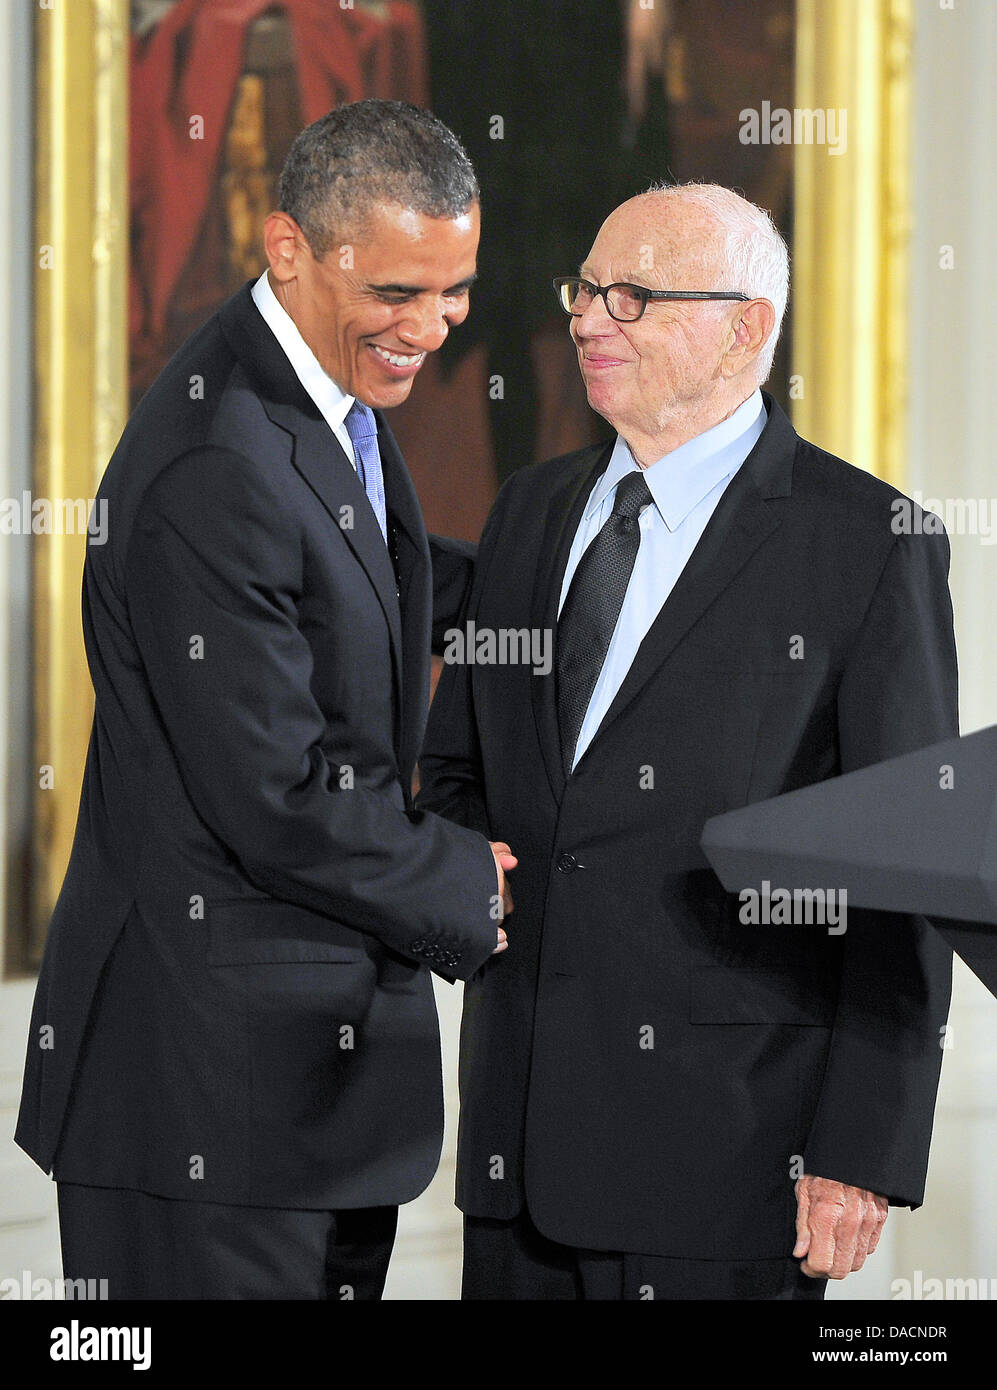 Washington DC, USA. 10th July, 2013. US painter, sculptor, and printmaker Ellsworth Kelly (R) shakes hands with - Stock Image